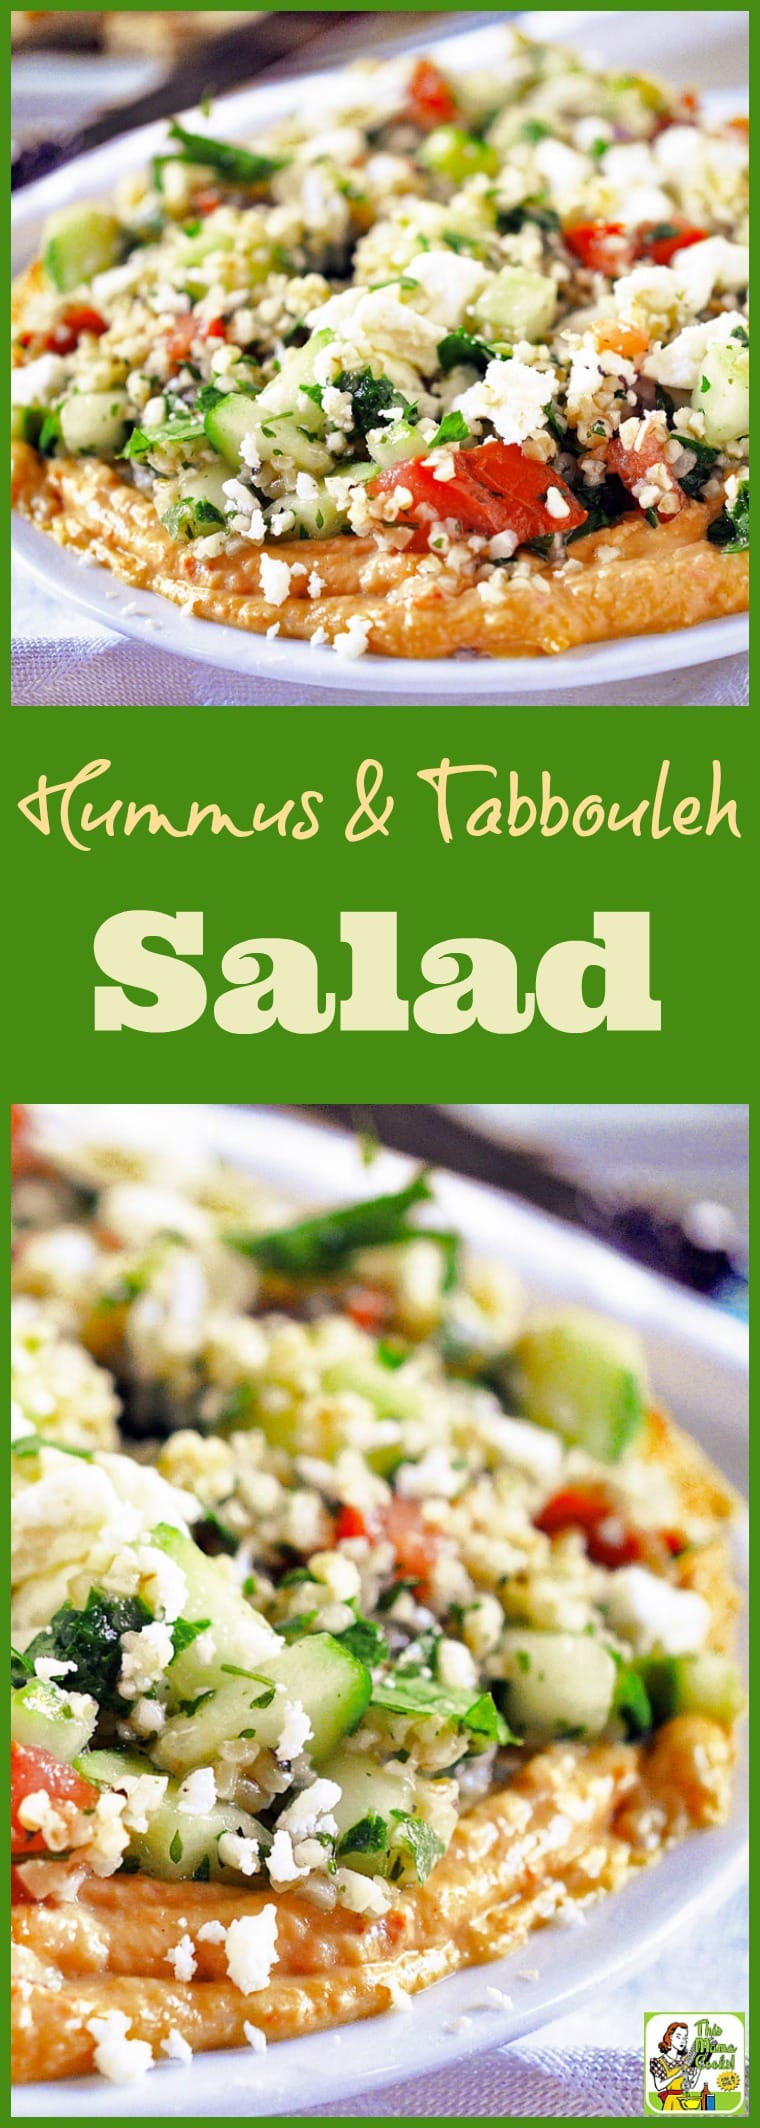 This Hummus & Tabbouleh Salad recipe can be used as a party appetizer or in a sandwich wrap. Comes with a gluten free option using quinoa. Click to get this easy to make healthy hummus and feta cheese dip recipe.